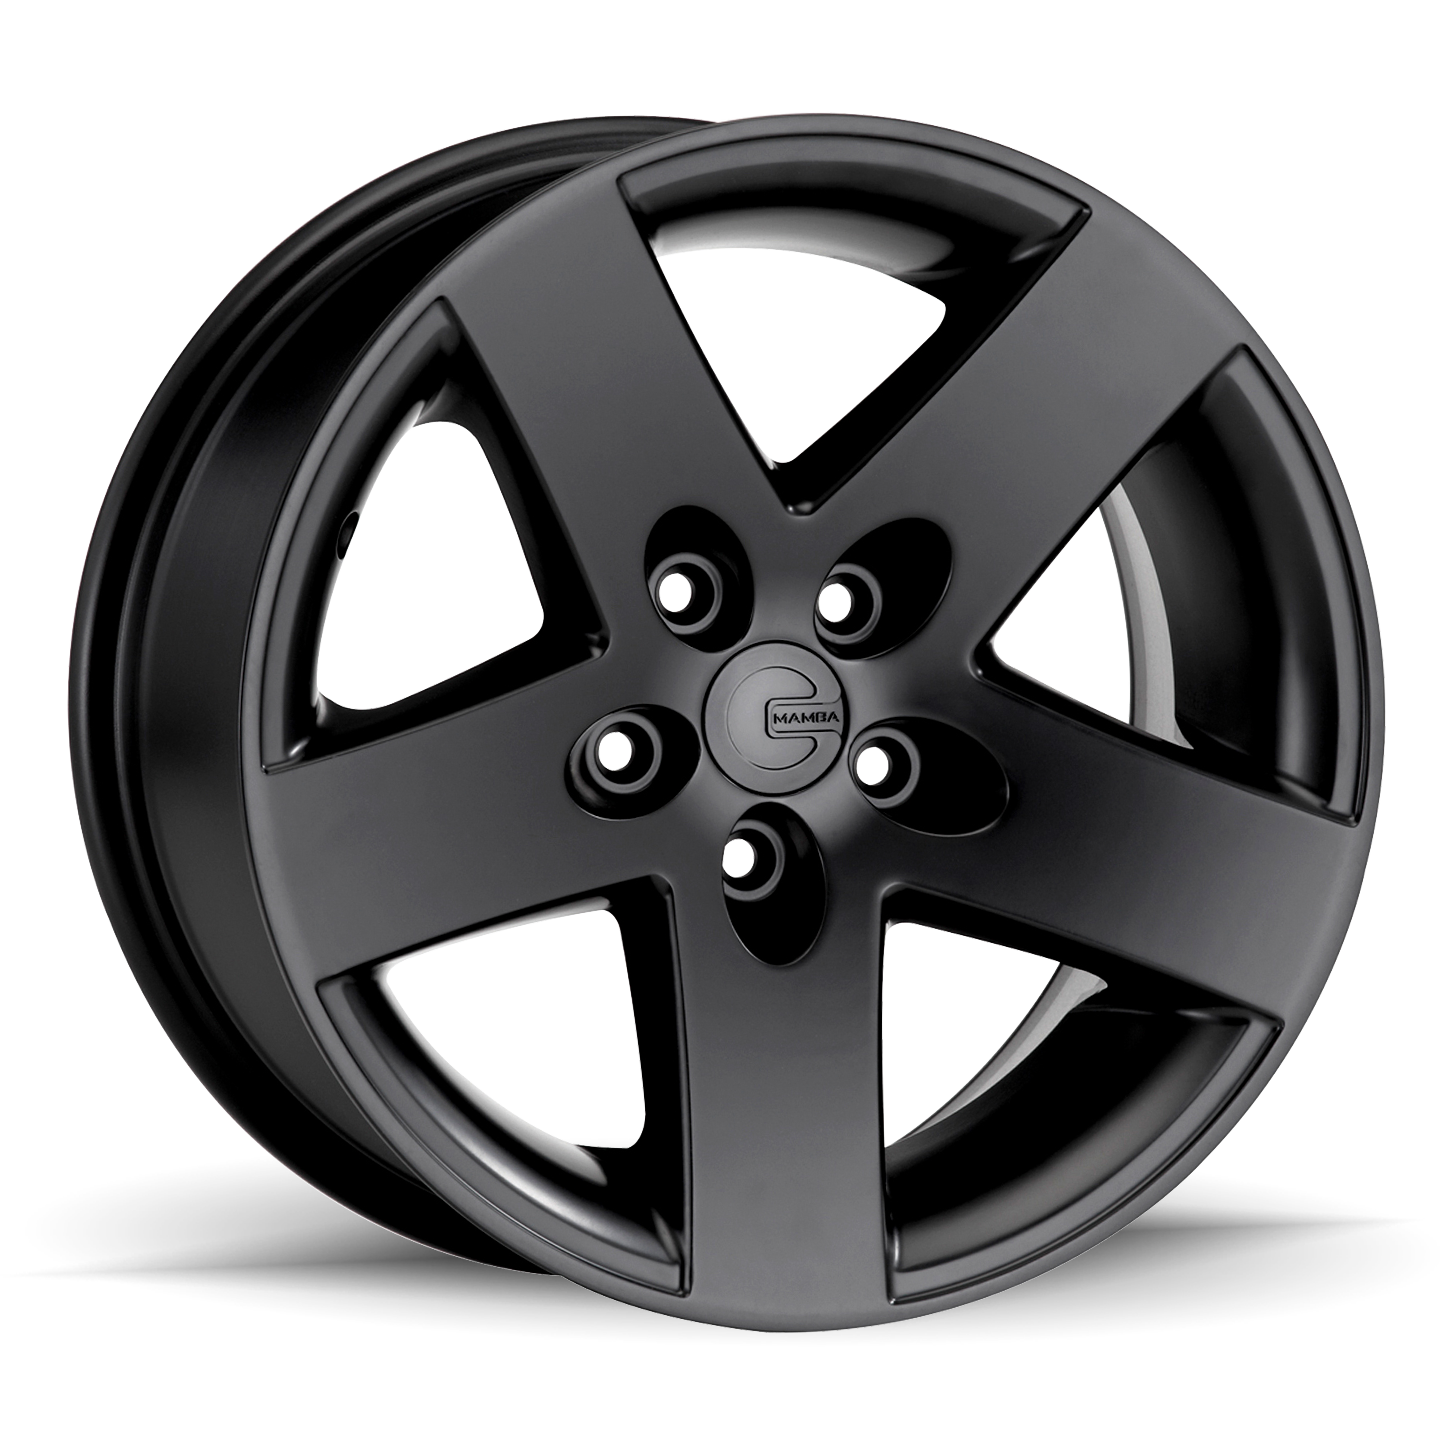 mr1x mamba offroad wheels